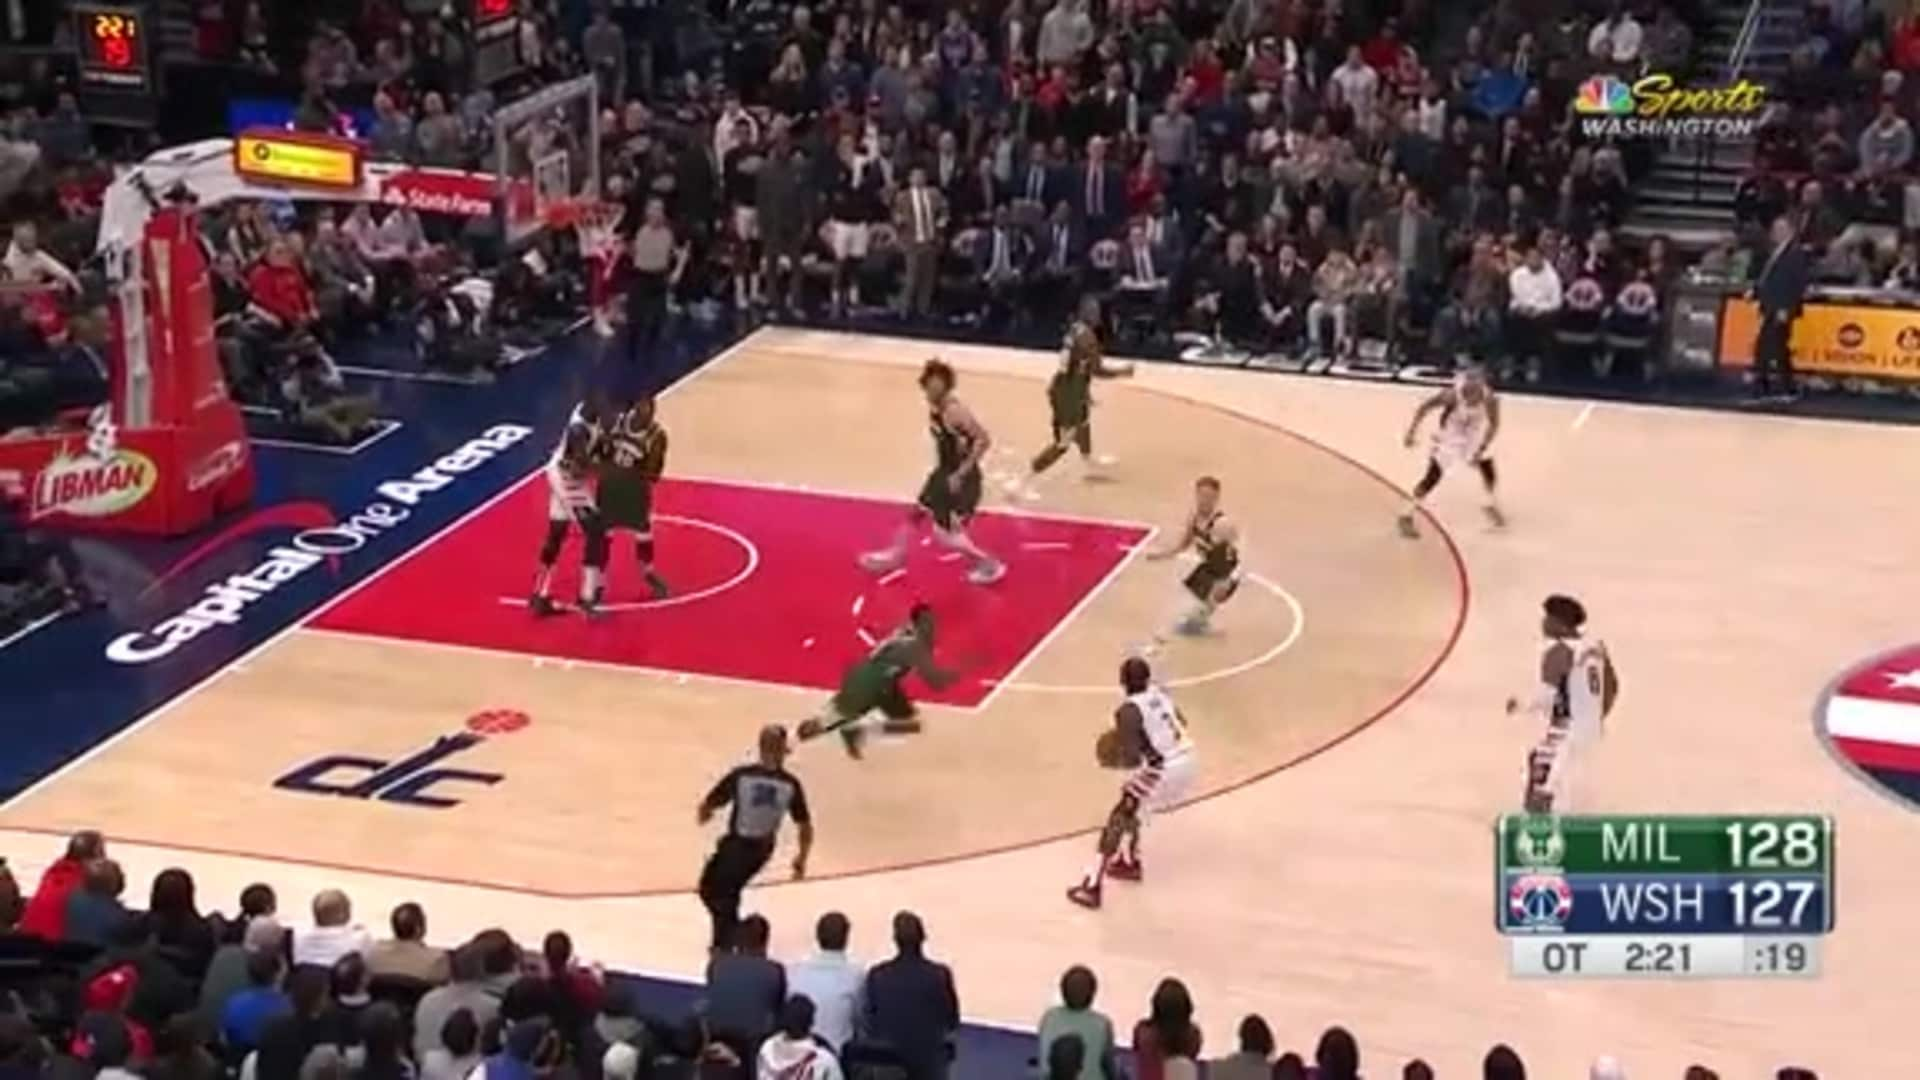 Highlights: Wizards vs. Bucks - 02/24/20